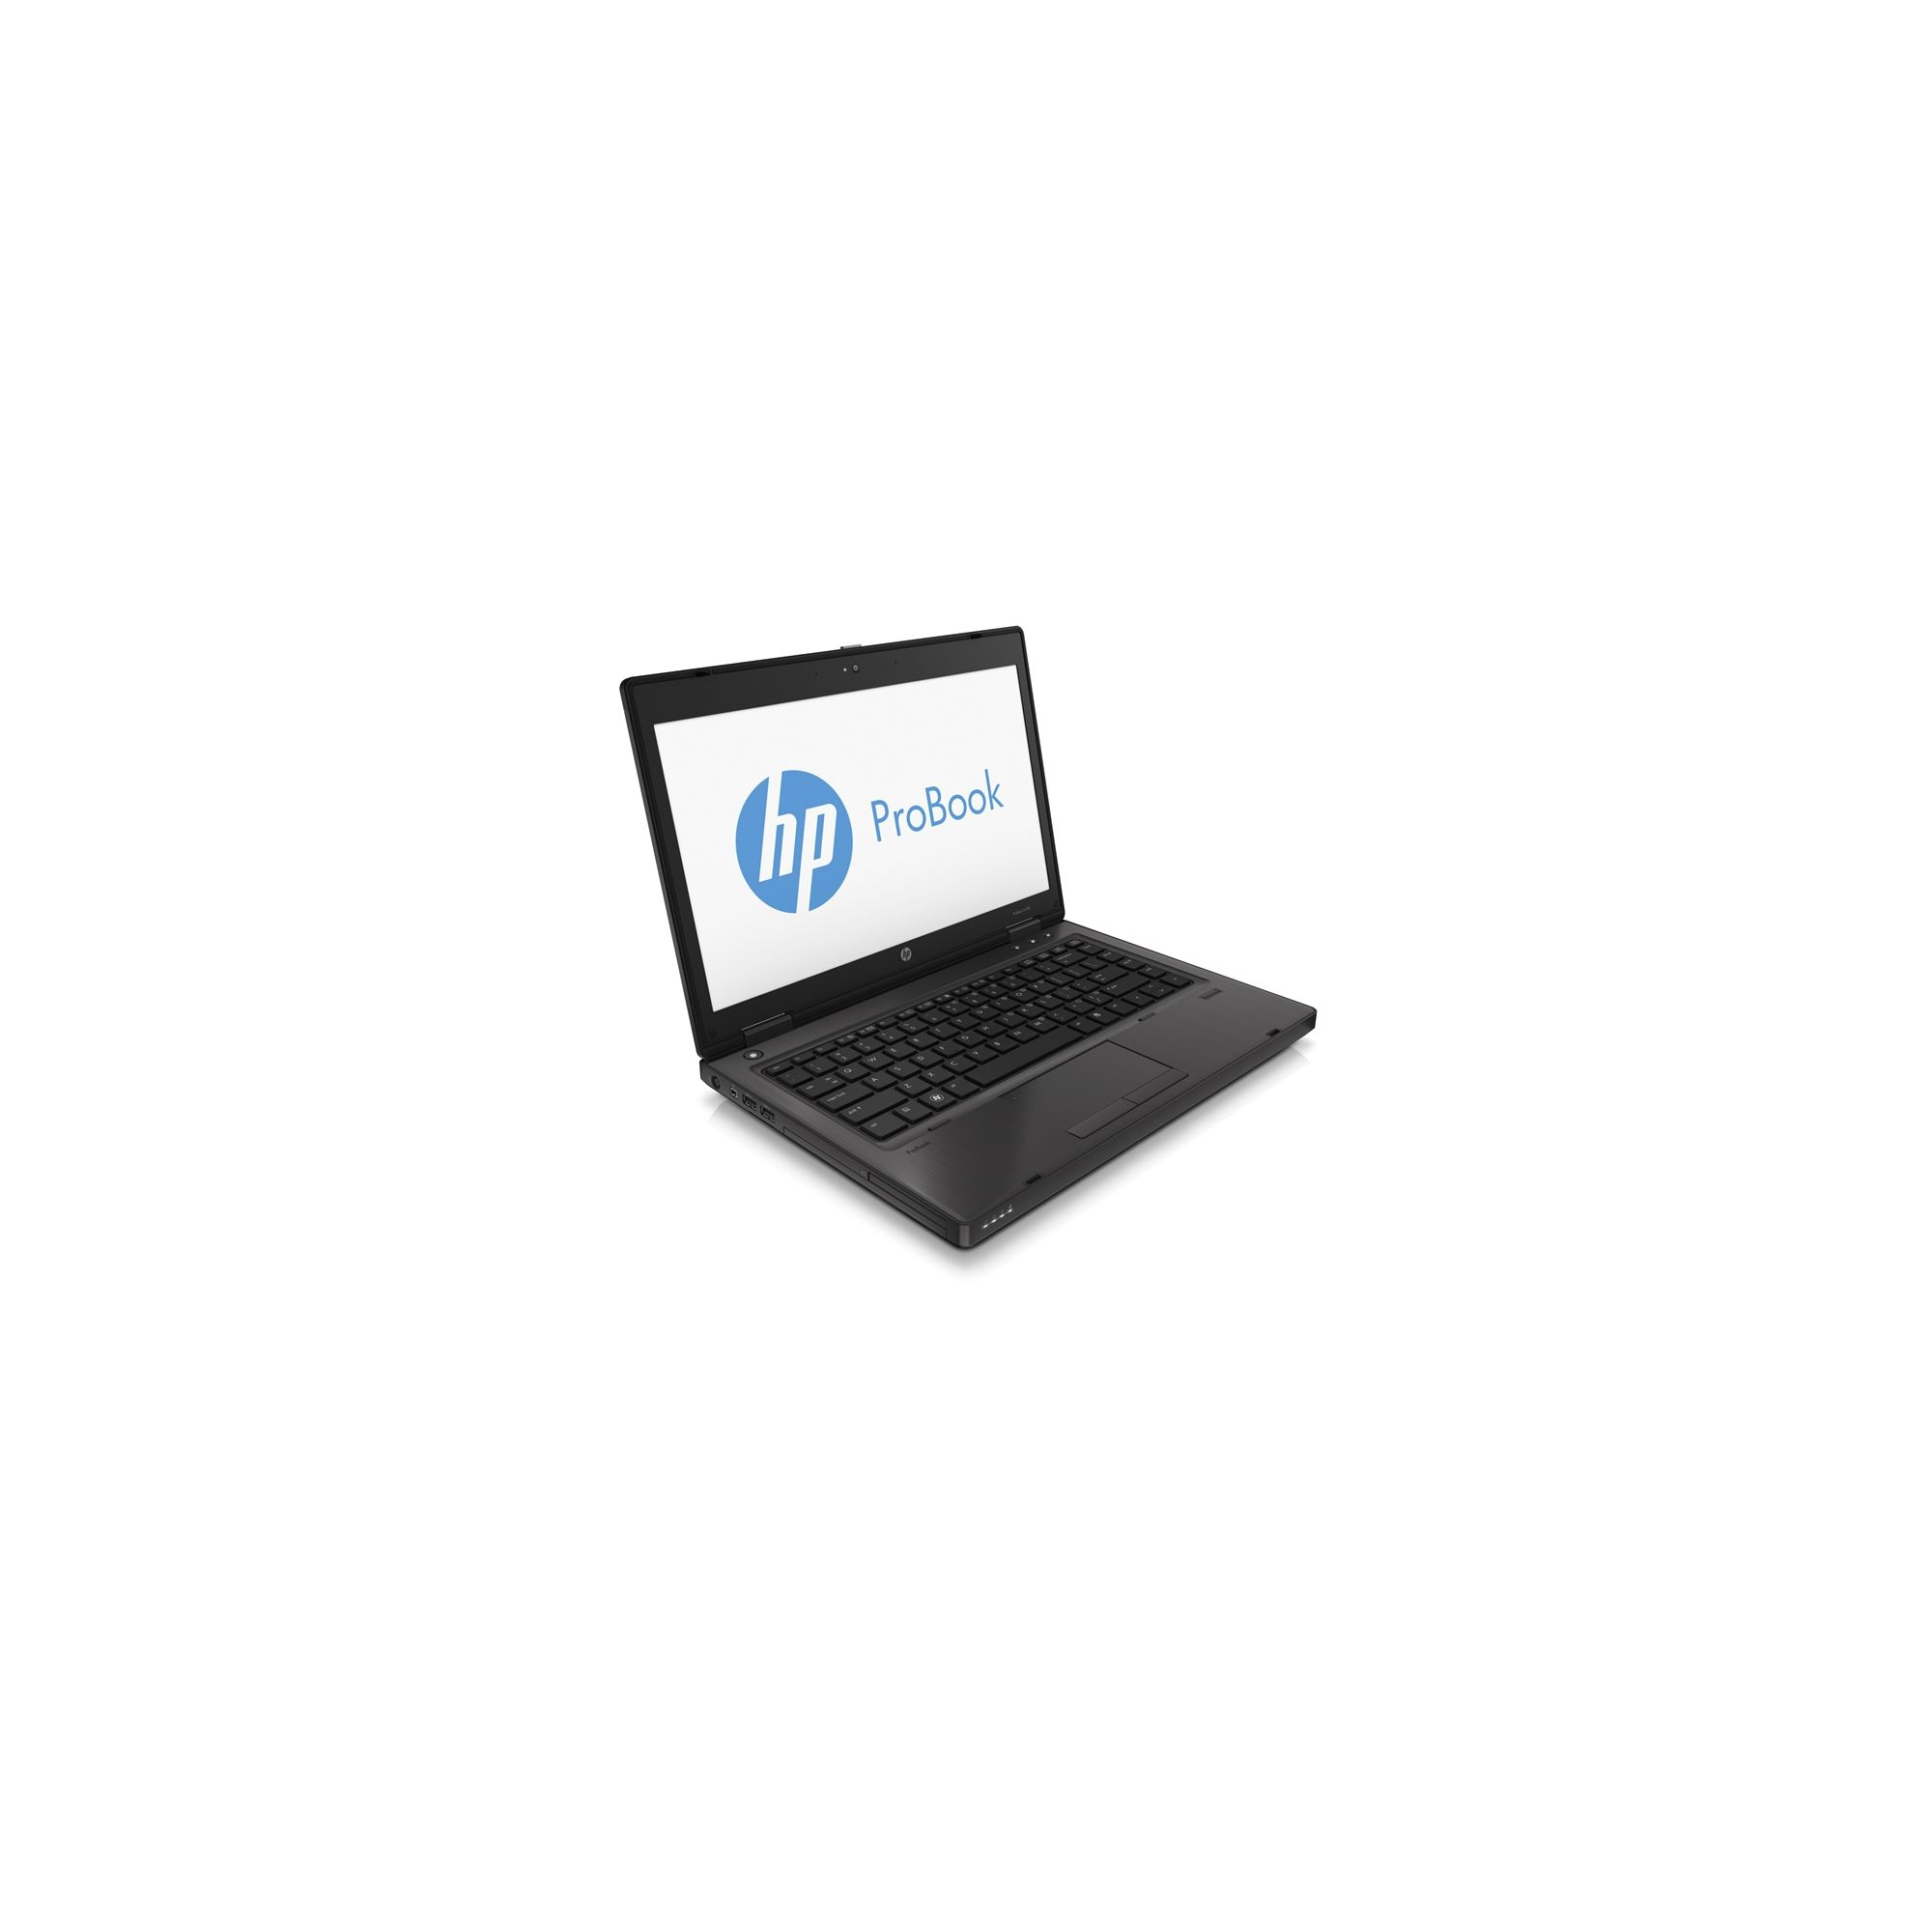 HP ProBook 6470b (14 inch) Notebook Core i5 (3230M) 2.6GHz 4GB 500GB DVD?RW SM DL WLAN Windows 7 Pro 64-bit available through downgrade rights from